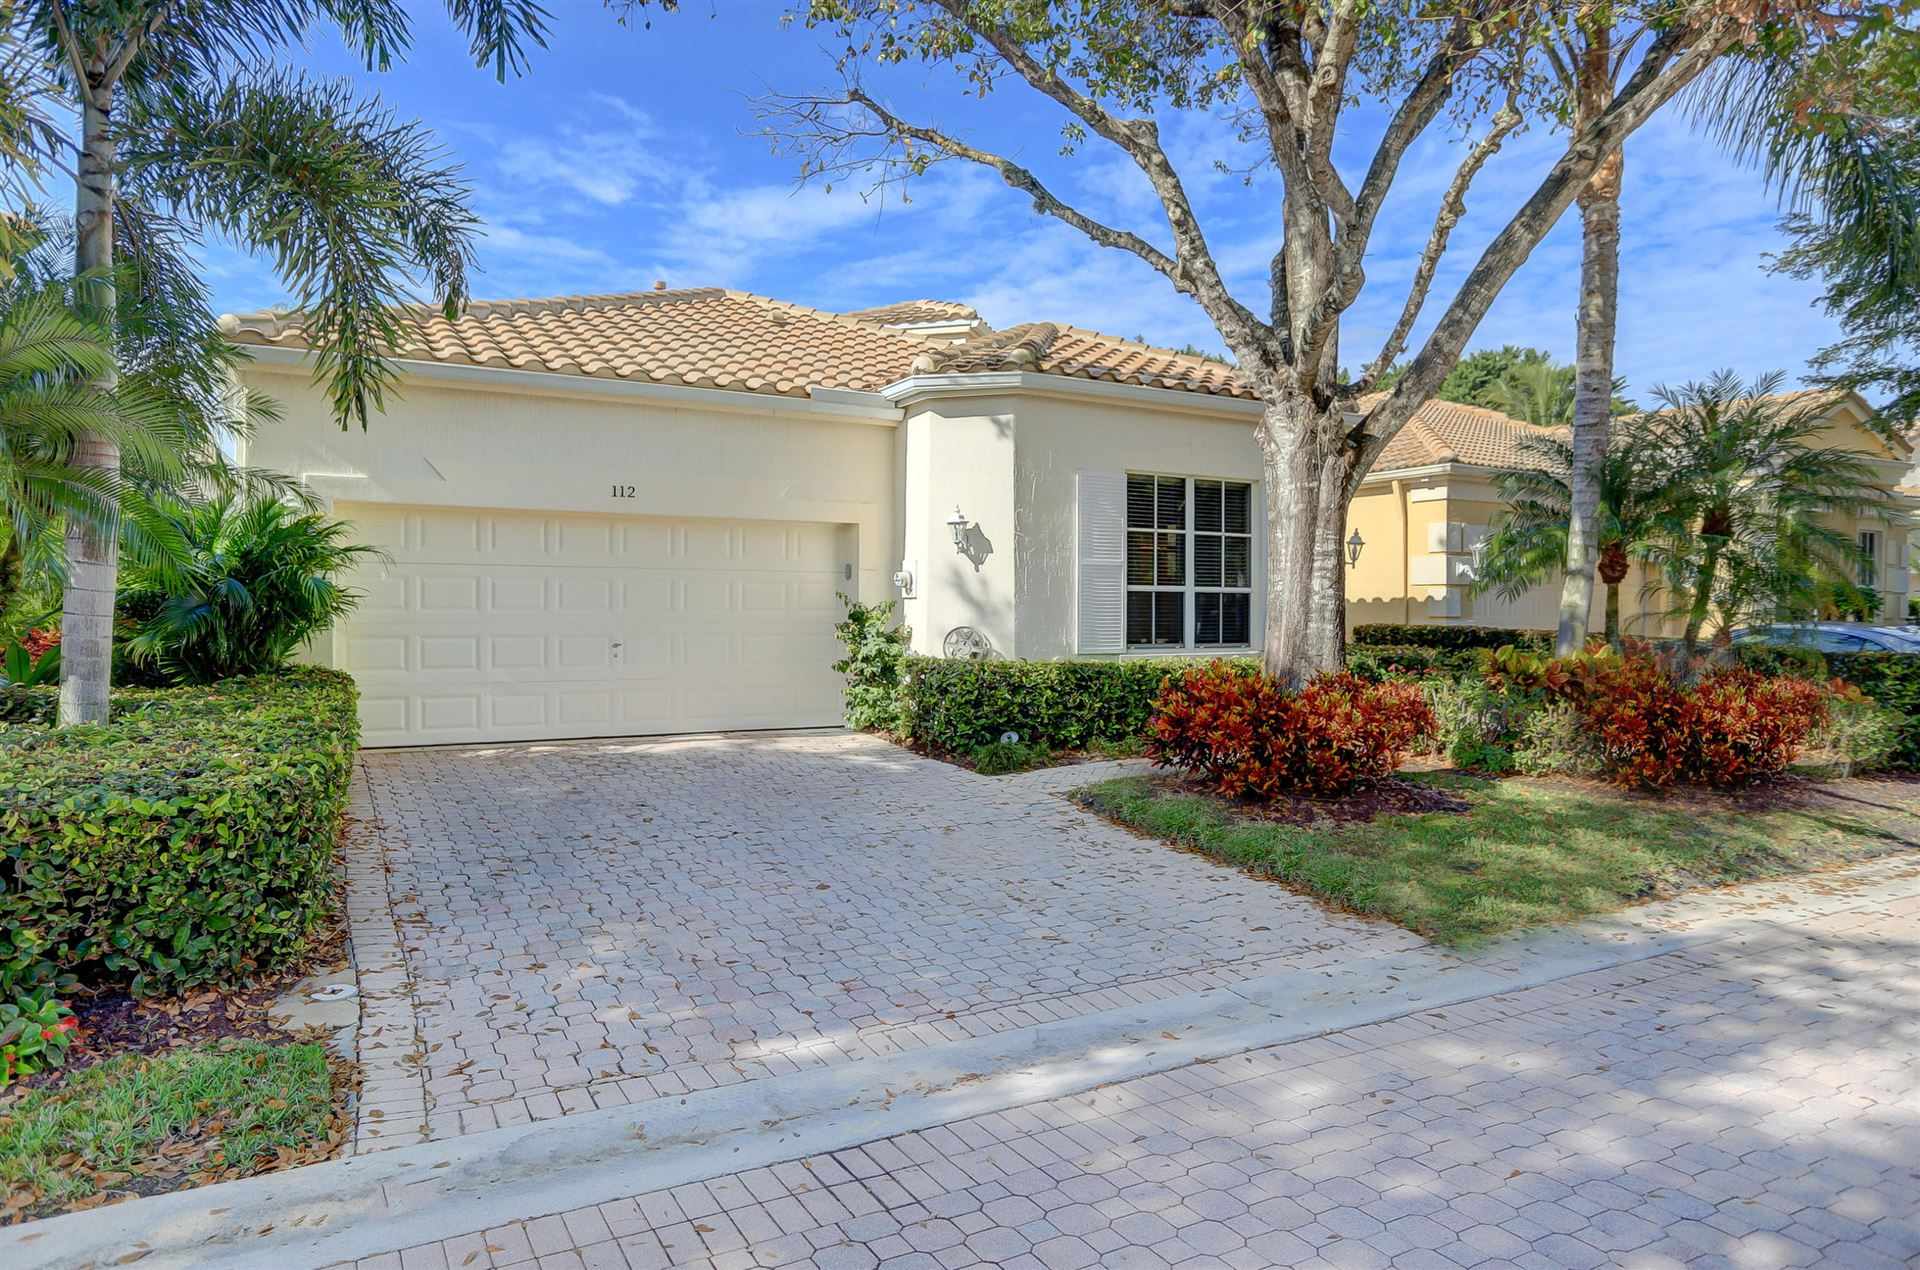 Photo of 112 Sunset Bay Drive, Palm Beach Gardens, FL 33418 (MLS # RX-10683470)